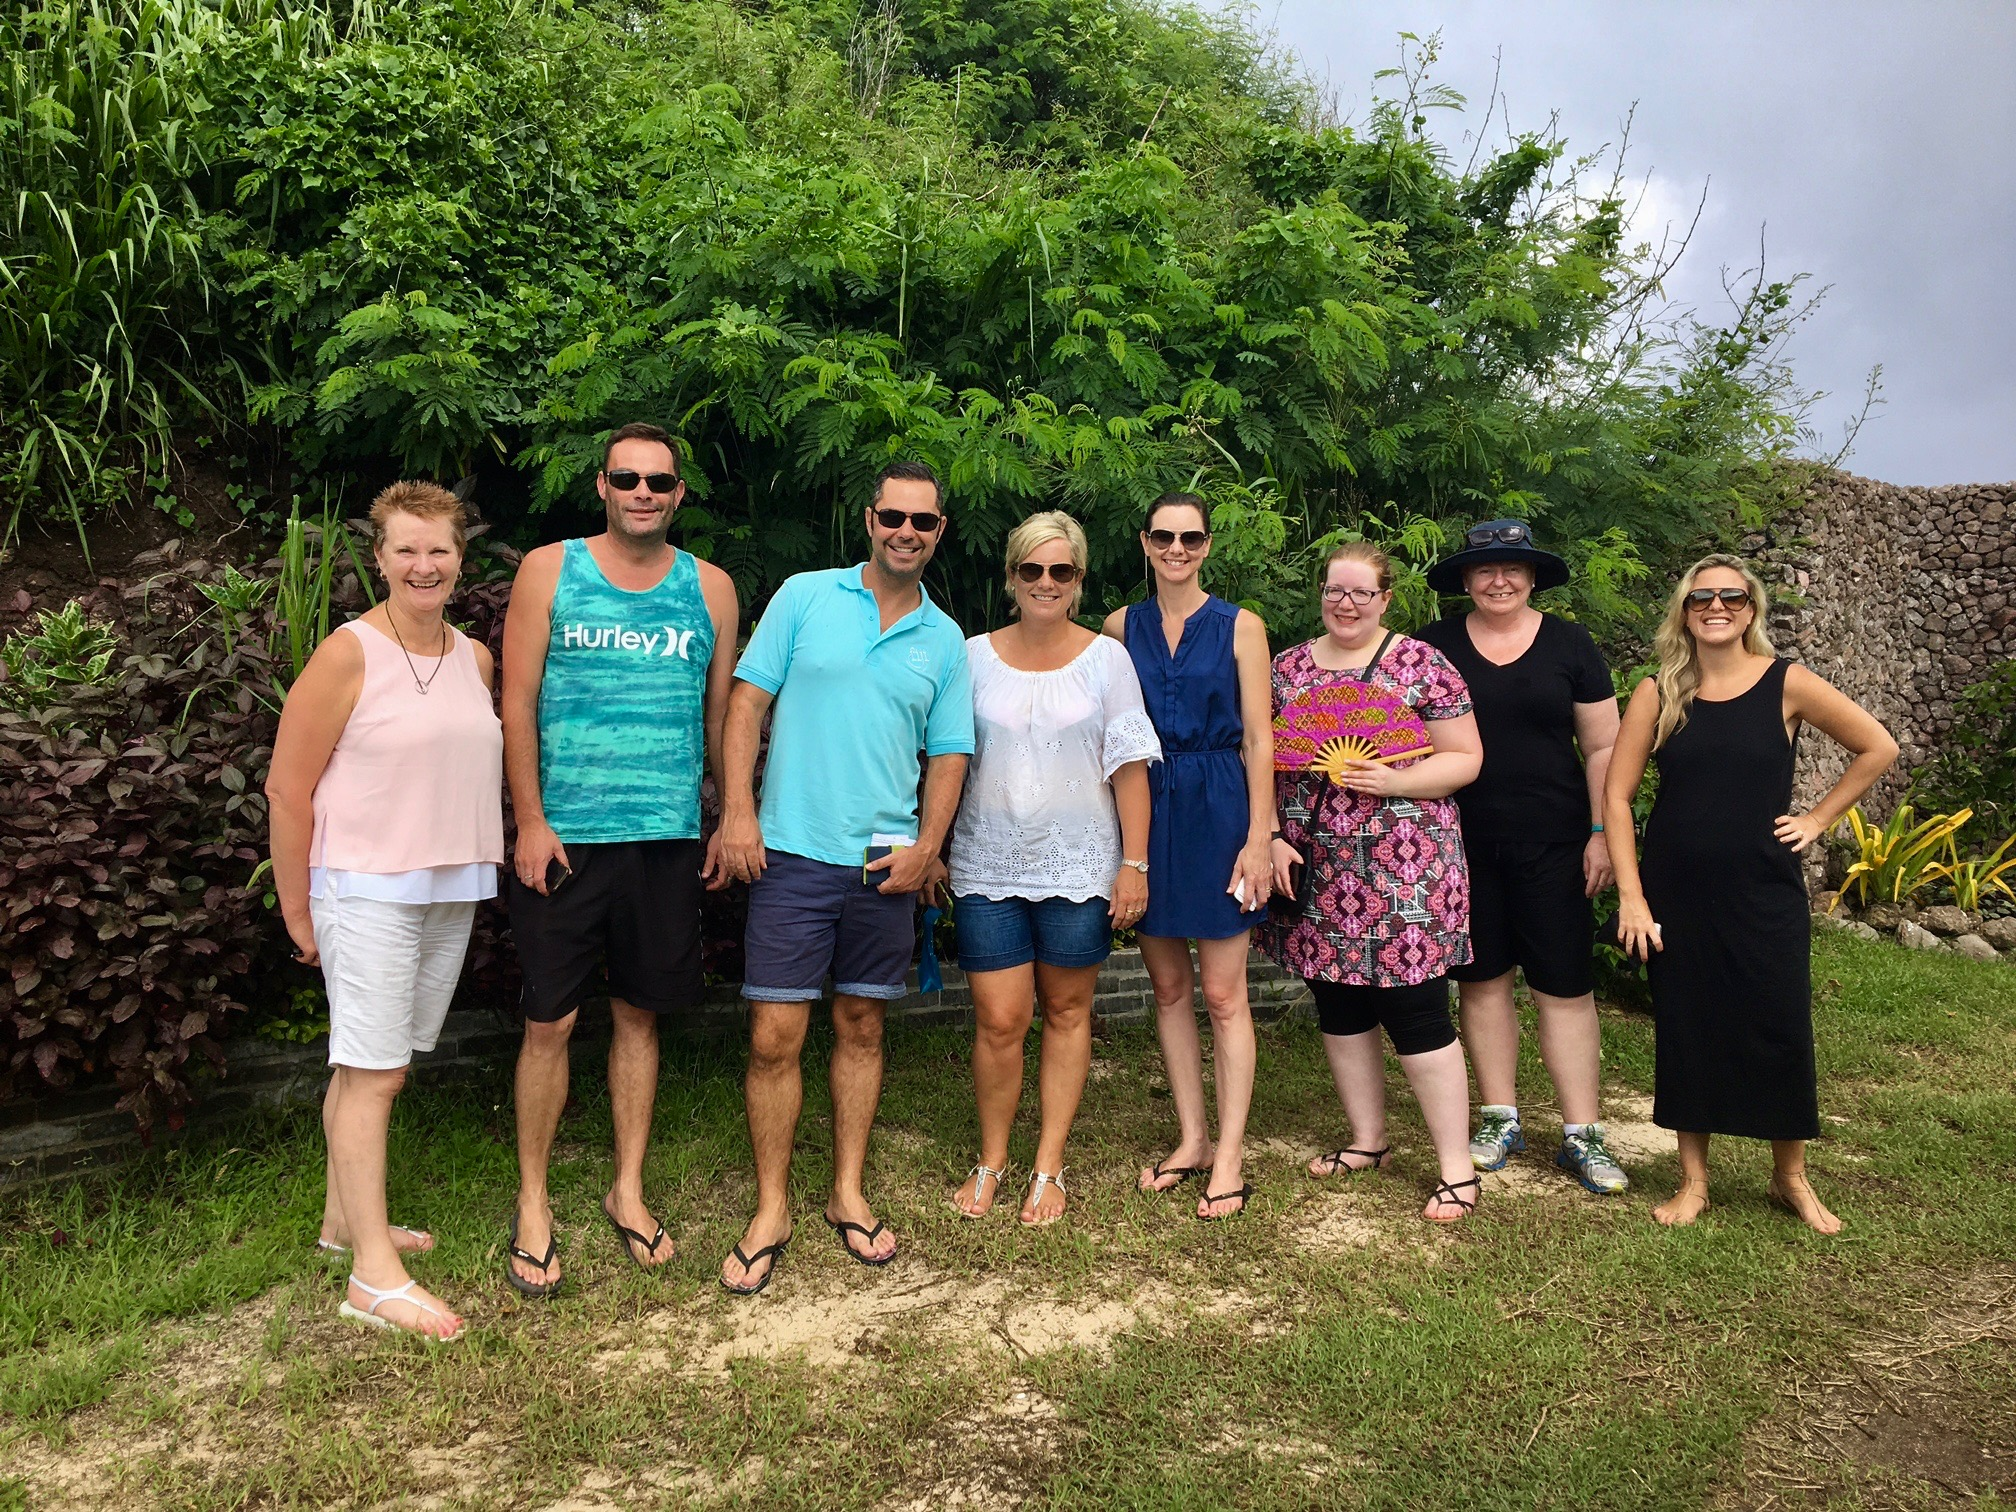 Diane Yates from Travel Managers, Stelios Missikos from MPS Travel & Tours, David McMahon from Tourism Fiji, Lisa McDonald from Lifestyle Travel Ballarat, Jacquelyn L'hostis from New England Travel Armidale, Emma Seymour from Patterson Lakes Travel & Cruise, Tina Lazell from Helloworld Everton Hills, and Astrid Martin from Traveledge Holidays